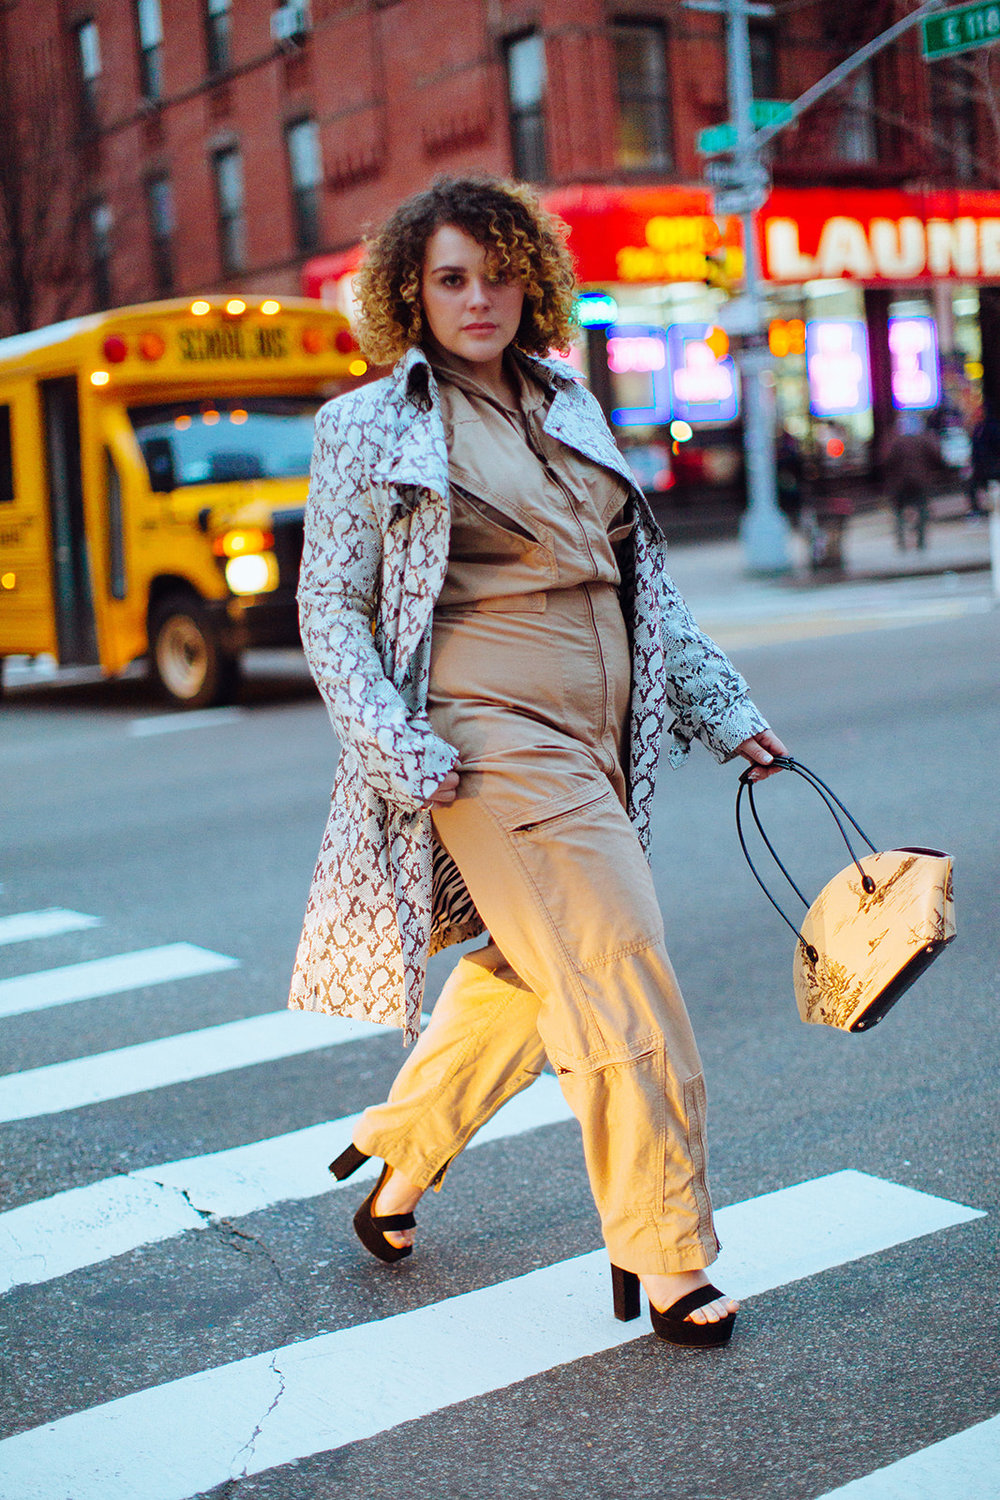 new york city fashion photographer-5.jpg